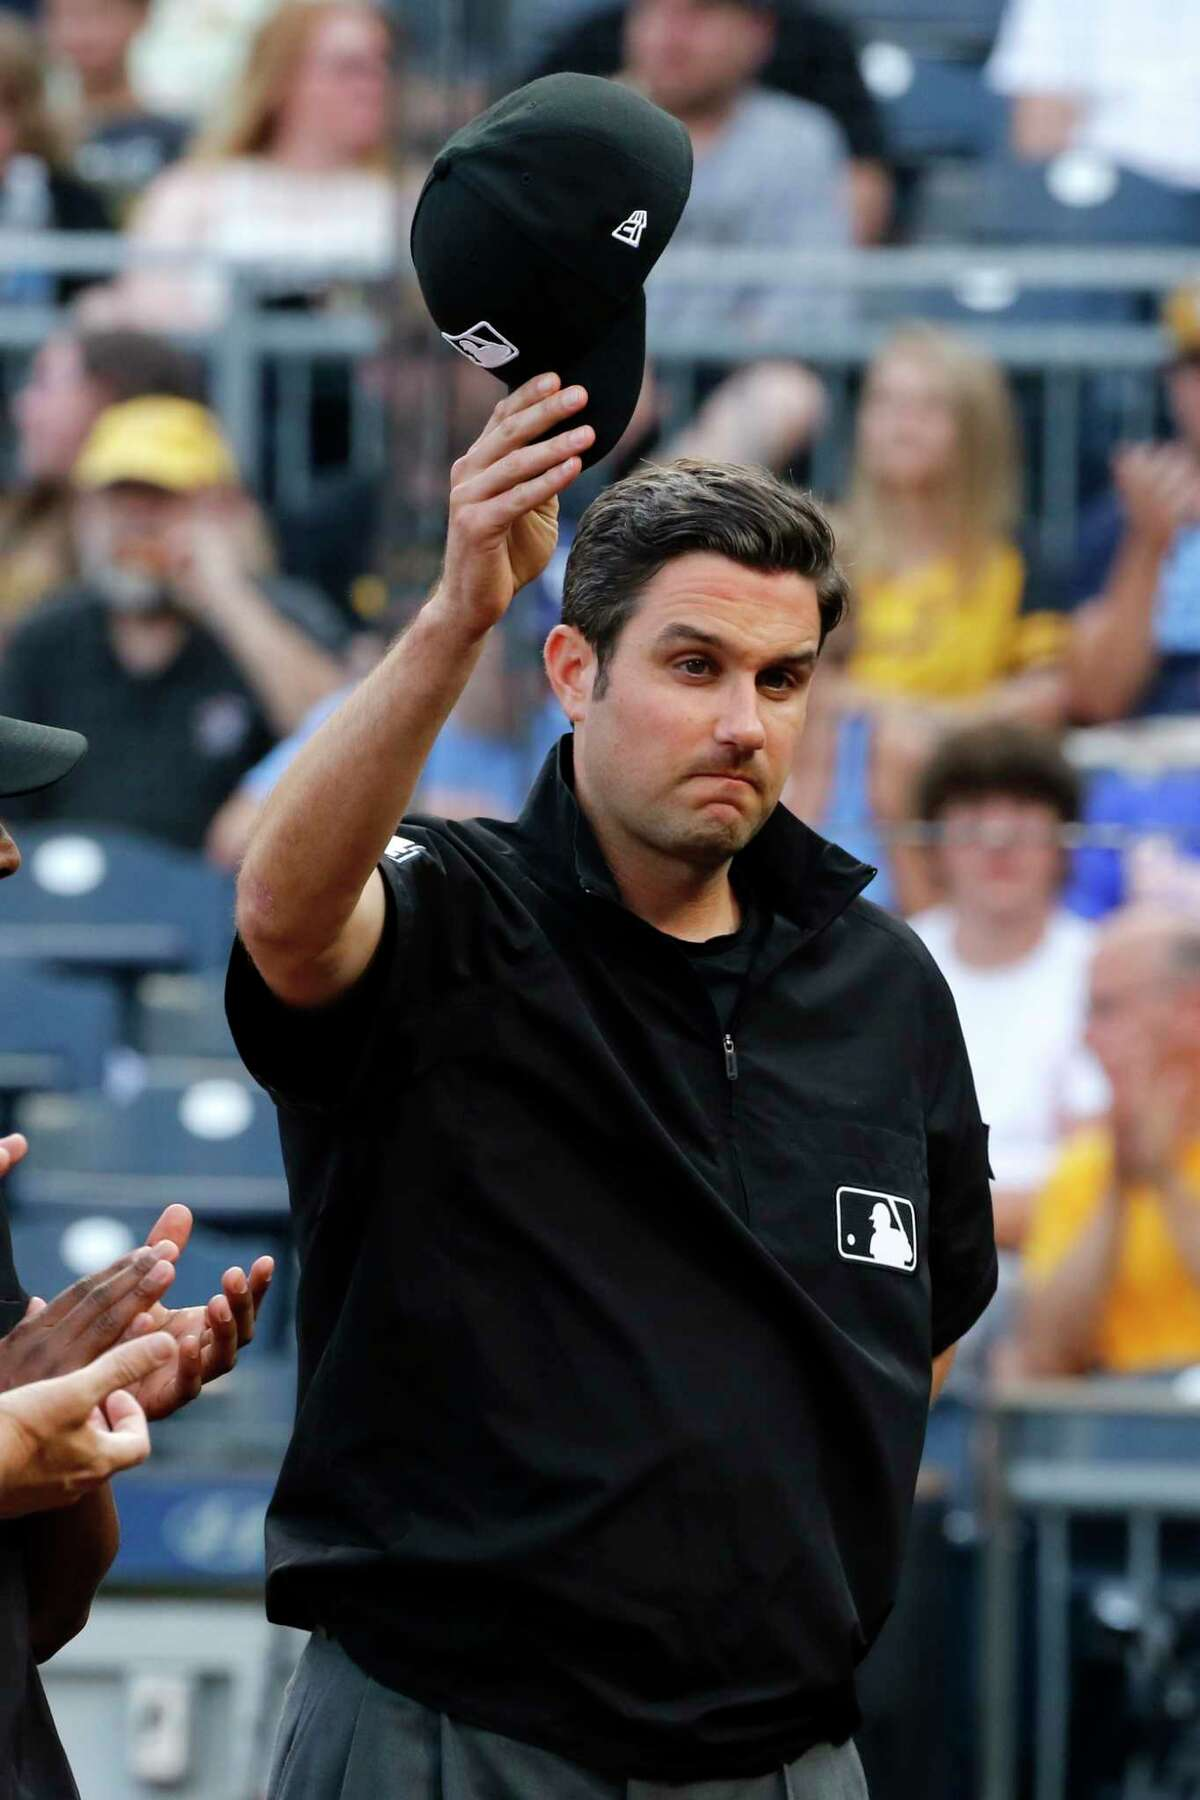 Major league umpire John Tumpane was recognized for his heroism Wednesday before the game between the Pittsburgh Pirates and Tampa Bay Rays in Pittsburgh on Thursday.